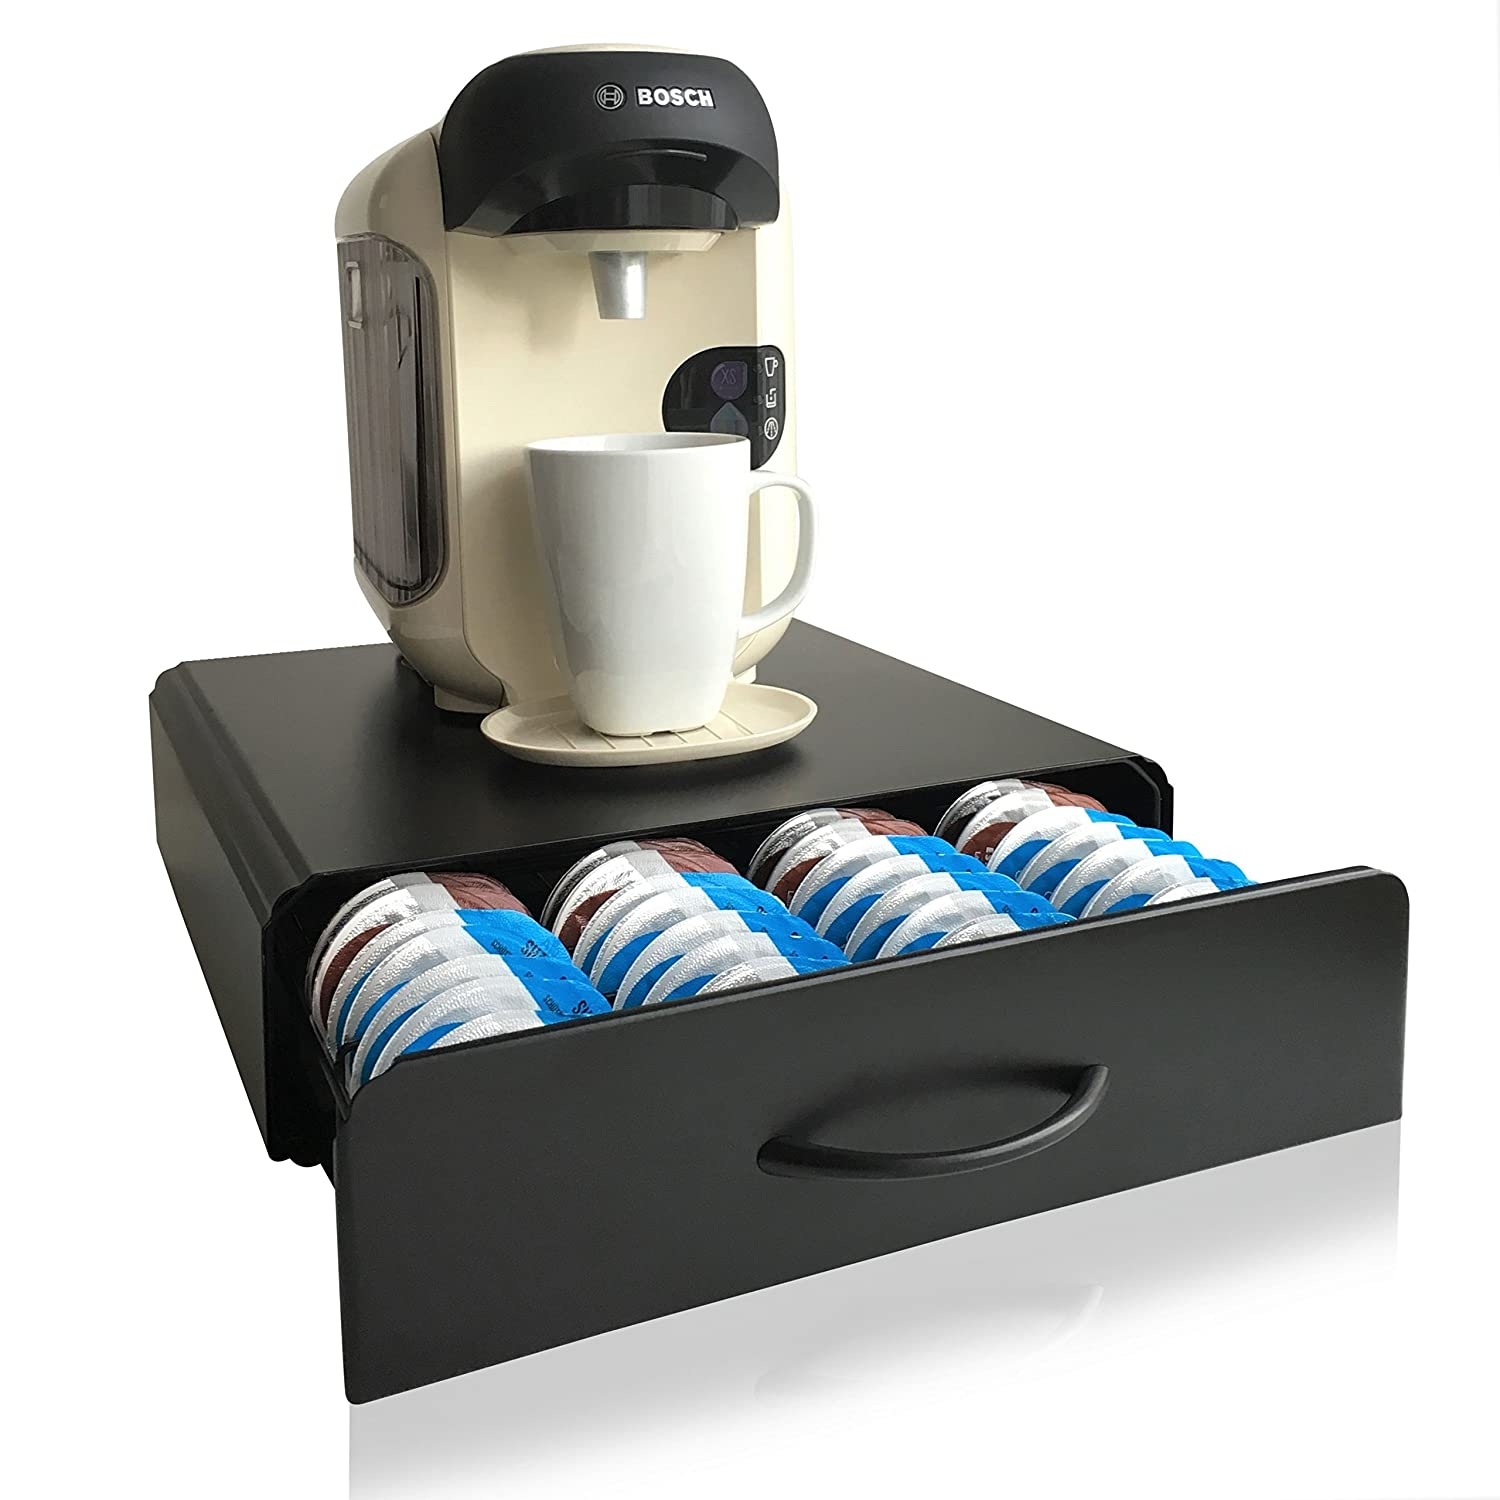 CAFE CONCETTO - Tassimo Pod Holder - T-Discs - 64psc - Coffee Capsule Storage - Machine Stand & Drawer Organiser - Anti-Vibration Design (Metal/Black)